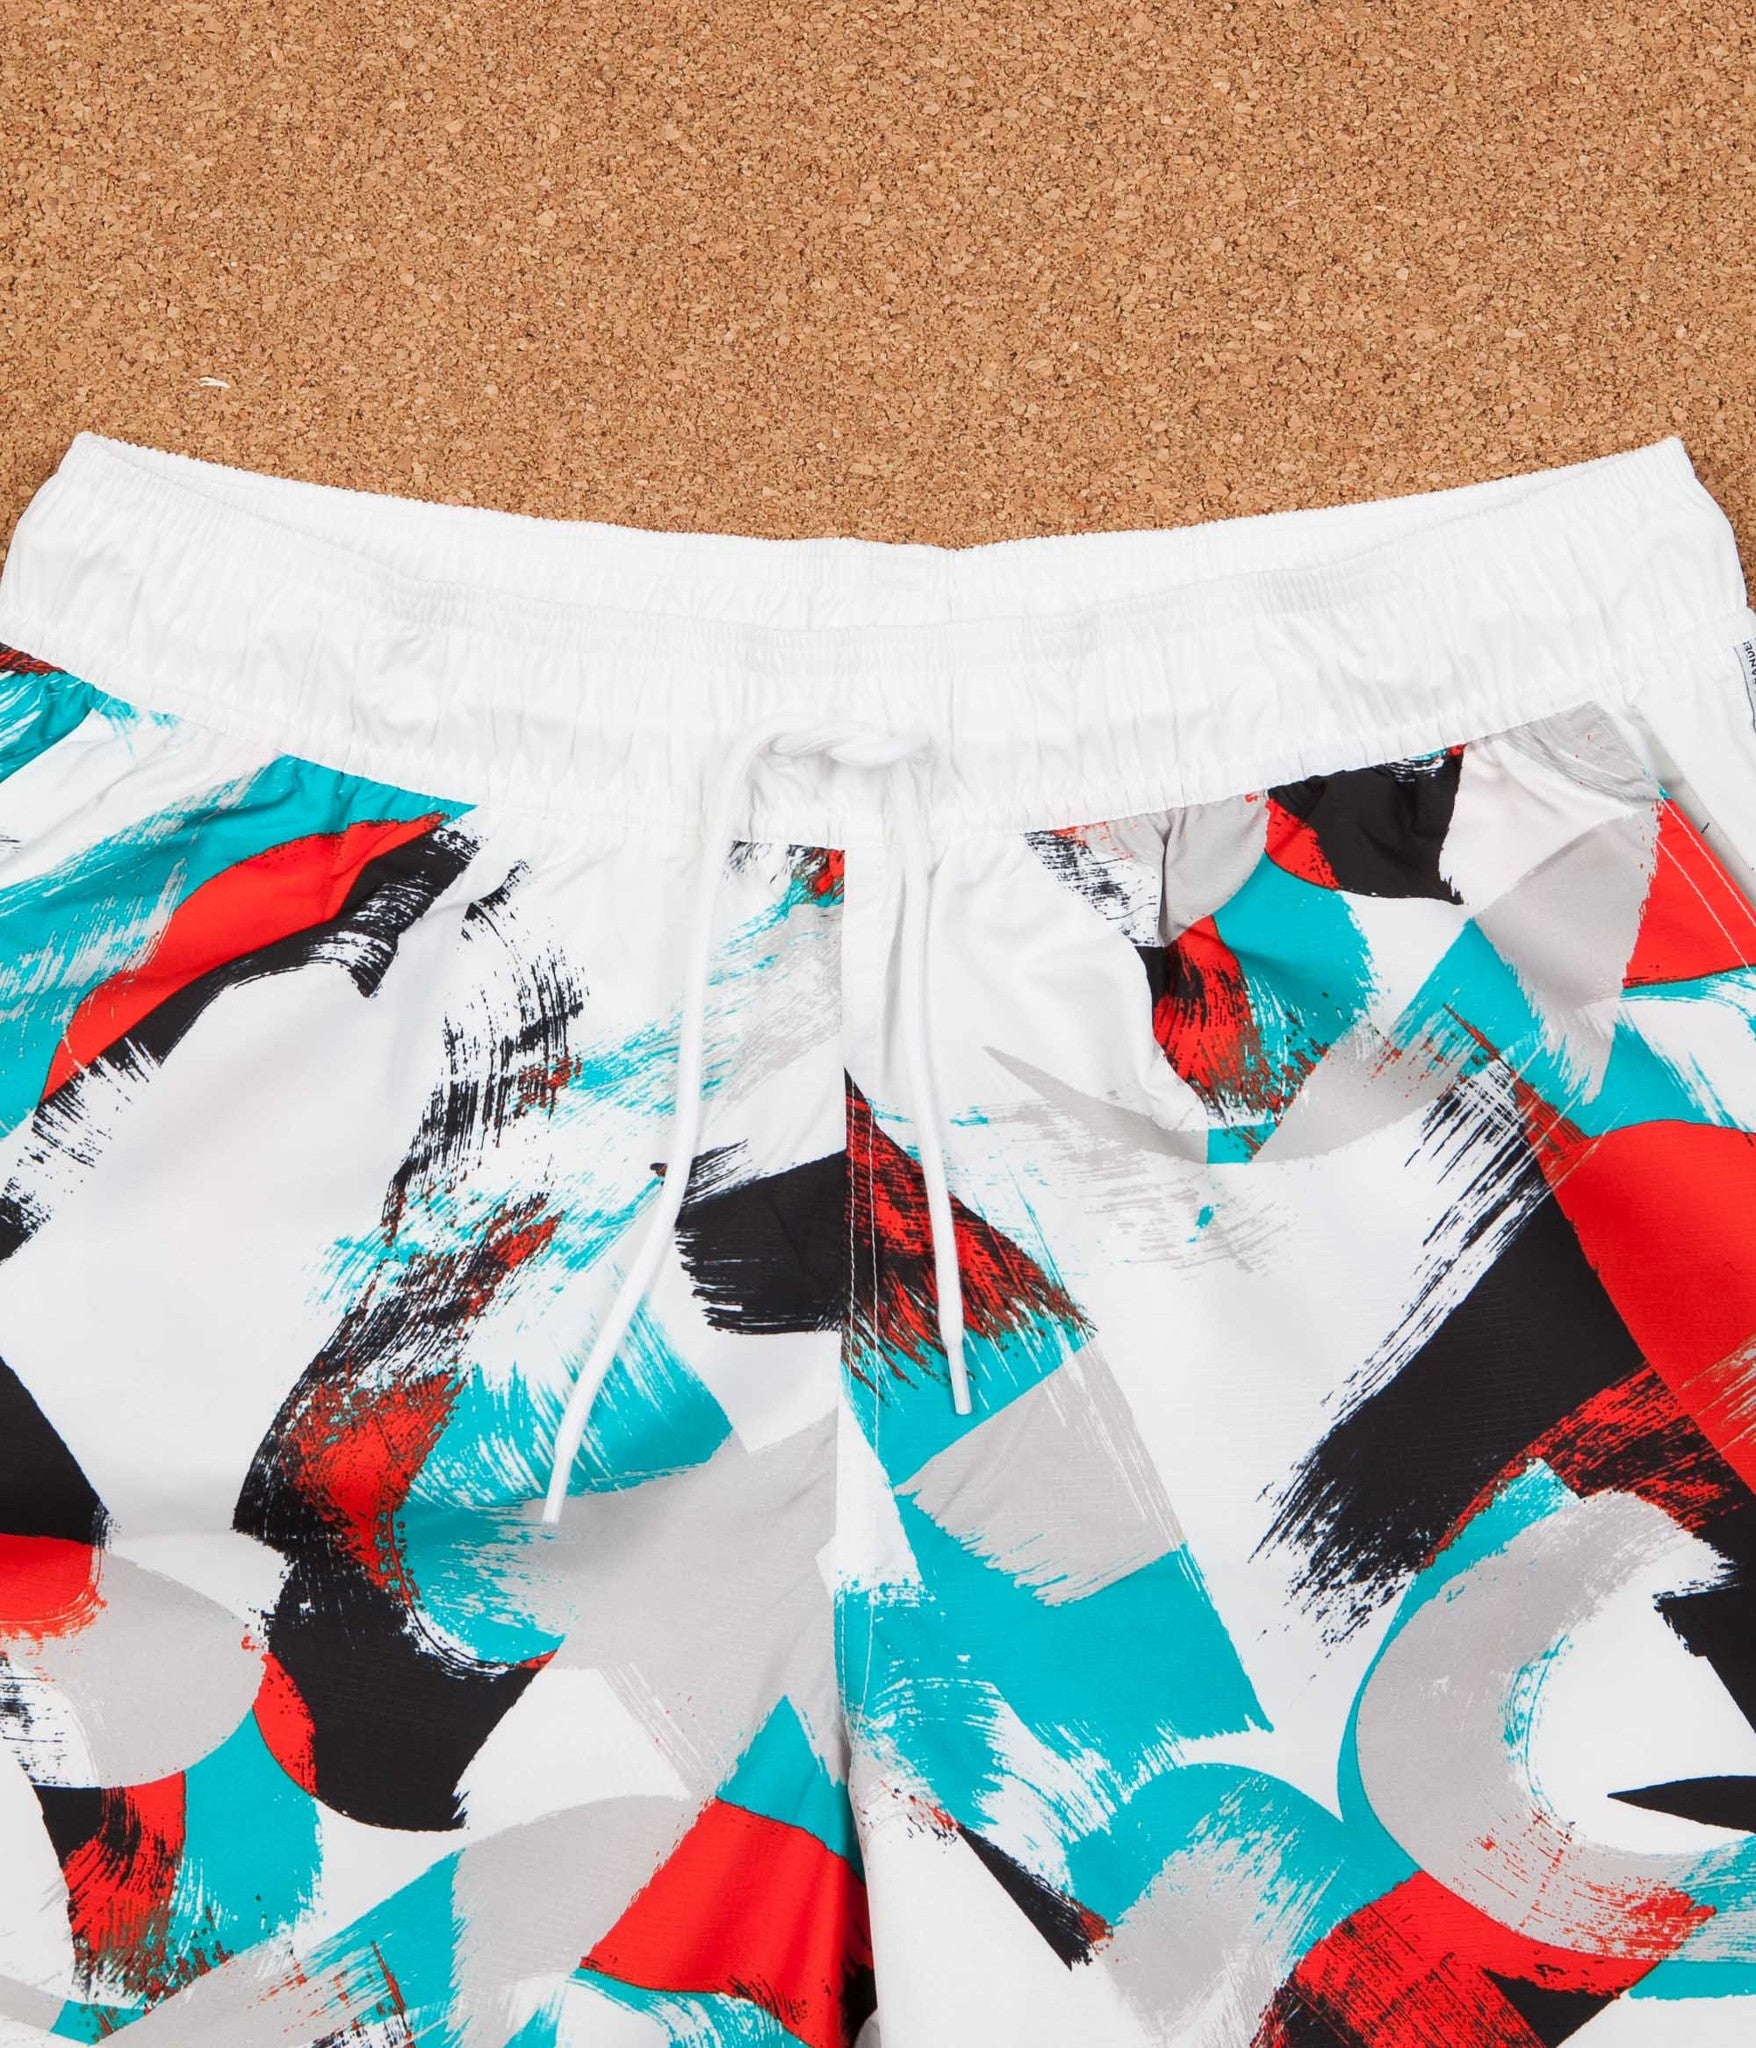 Adidas Courtside Shorts - White / Energy Blue / Energy / Black